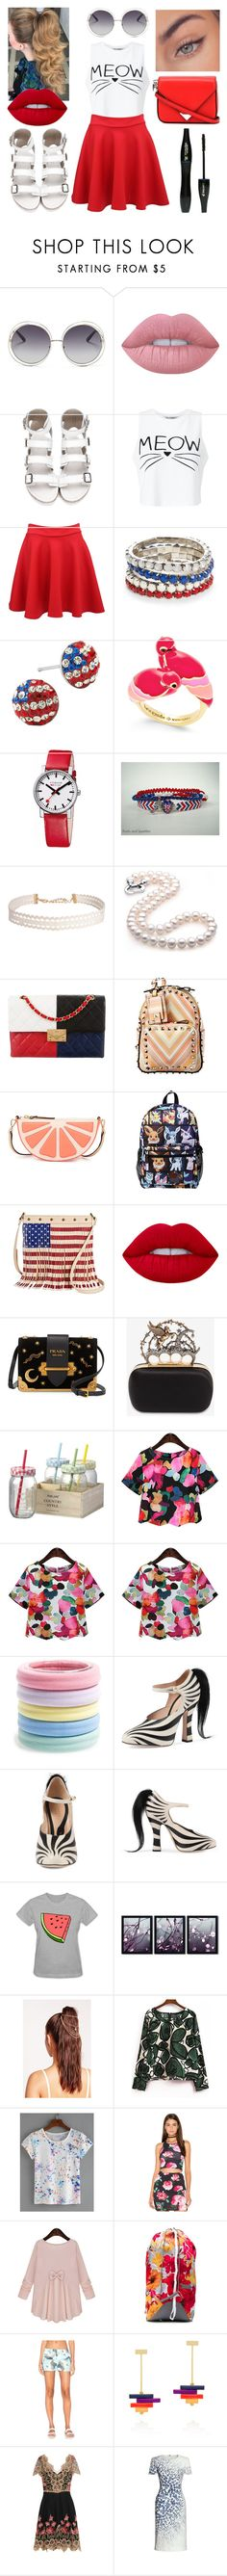 """0298"" by doglover43 ❤ liked on Polyvore featuring Chloé, Lime Crime, Miss Selfridge, Pilot, Red Camel, Silver Treasures, Kate Spade, Mondaine, Humble Chic and Chanel"